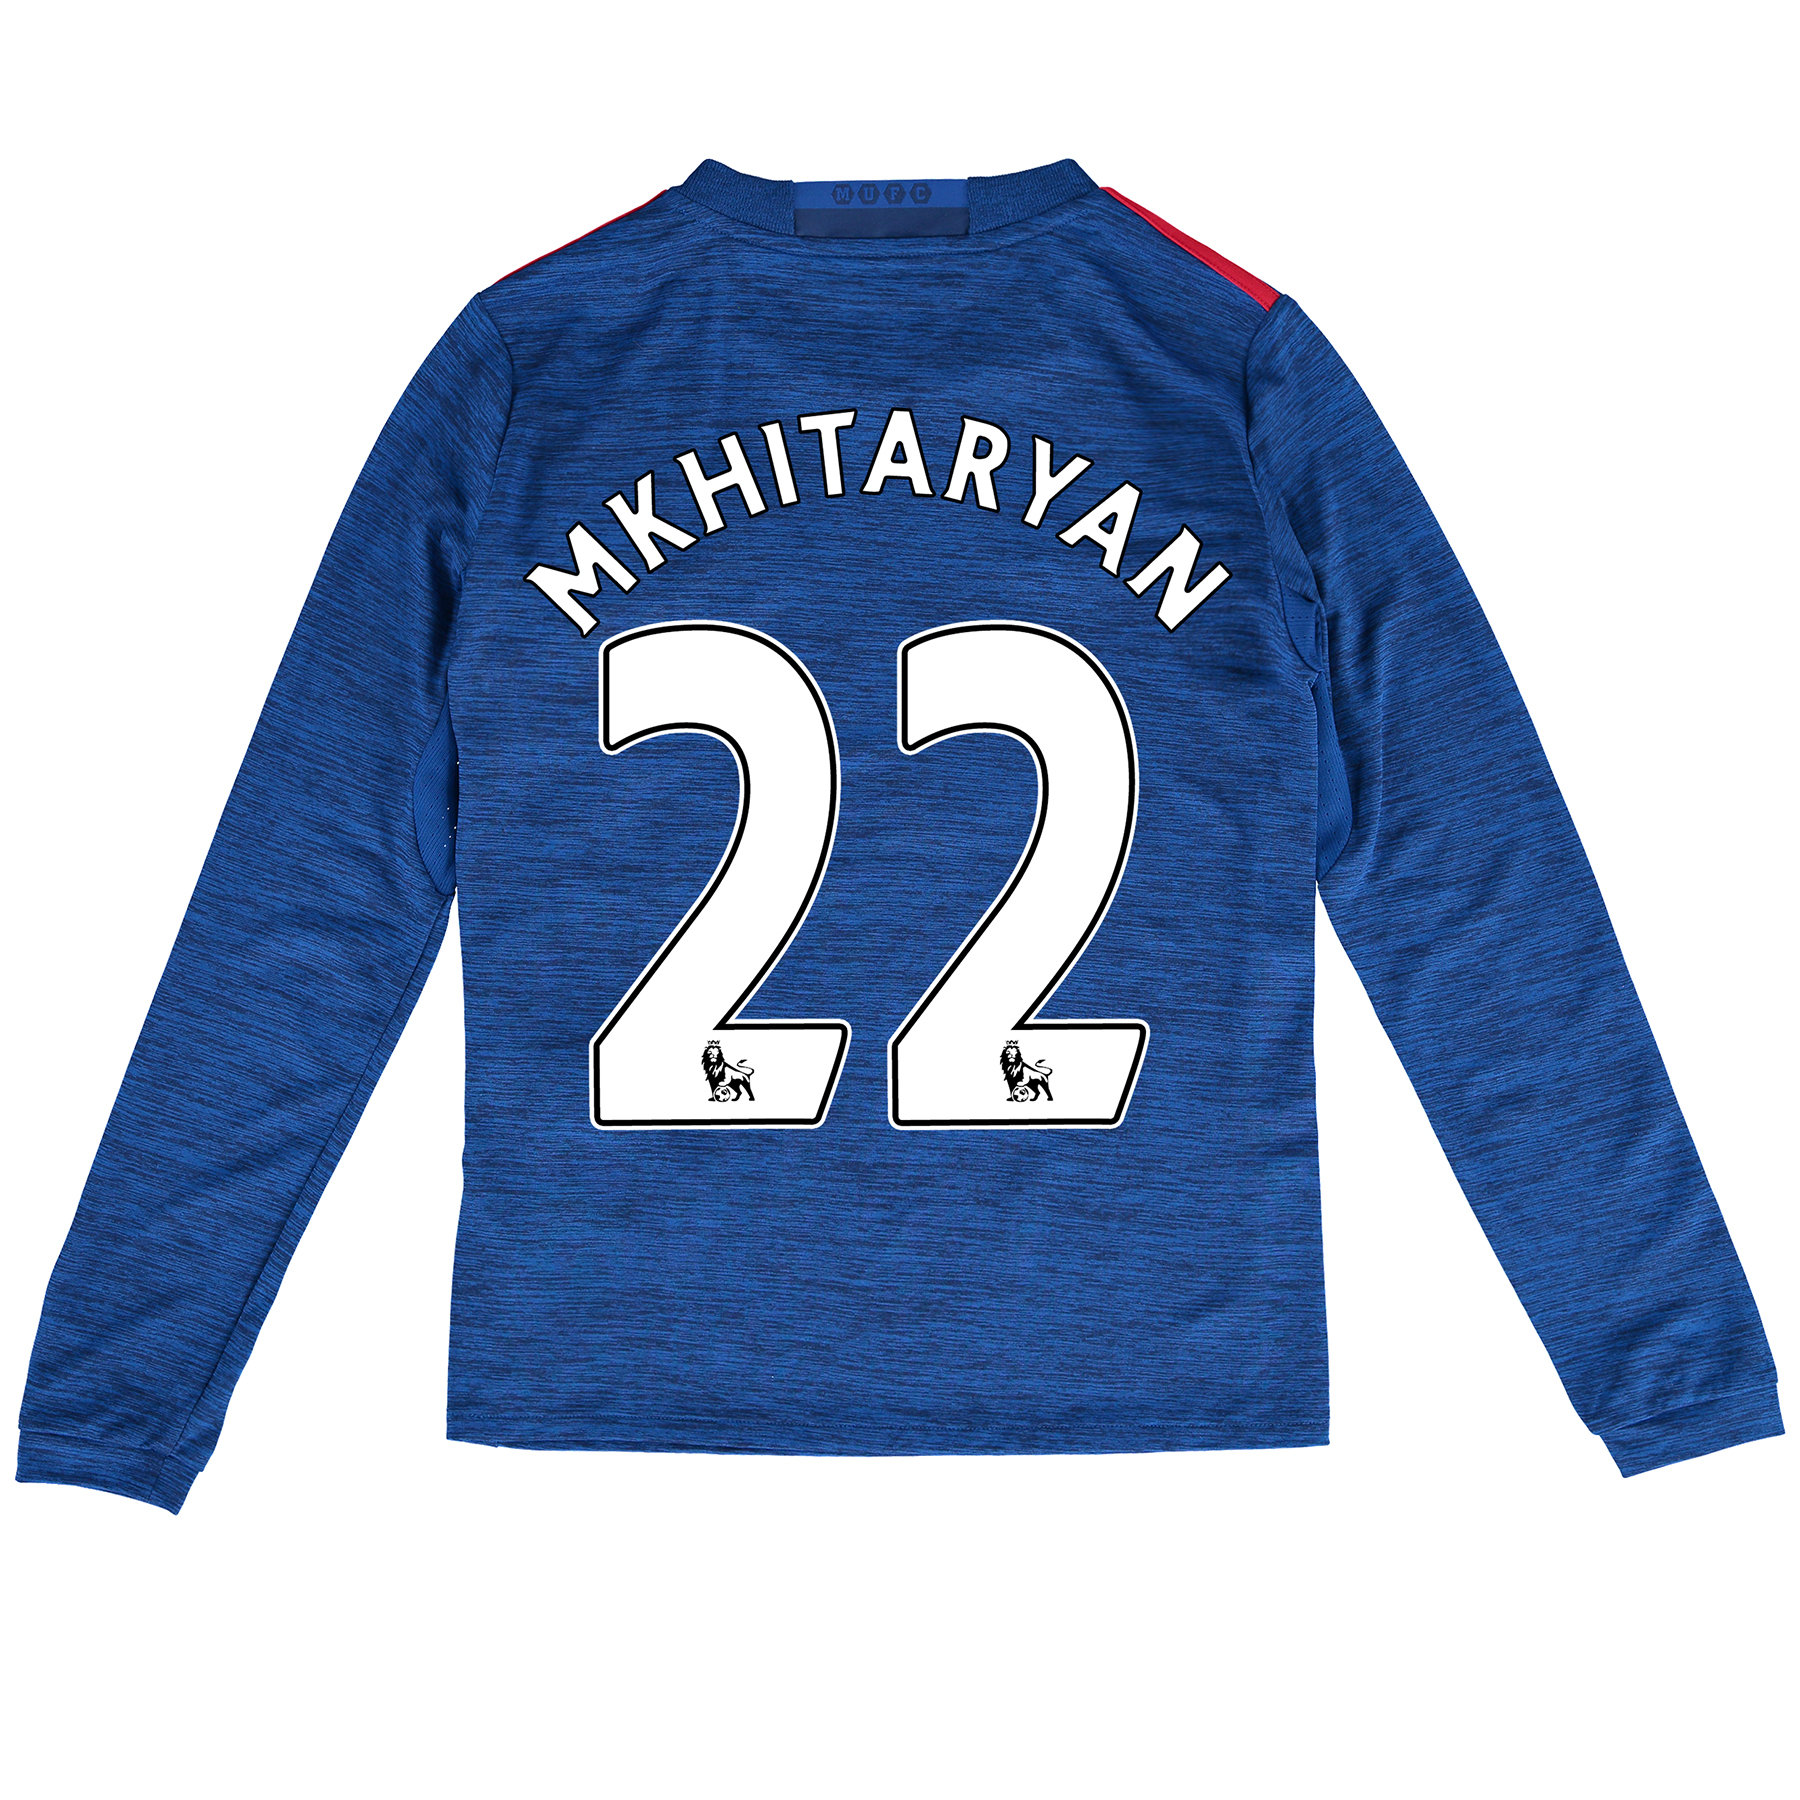 Manchester United Away Shirt 2016-17 - Kids - Long Sleeve with Mkhitar, Blue